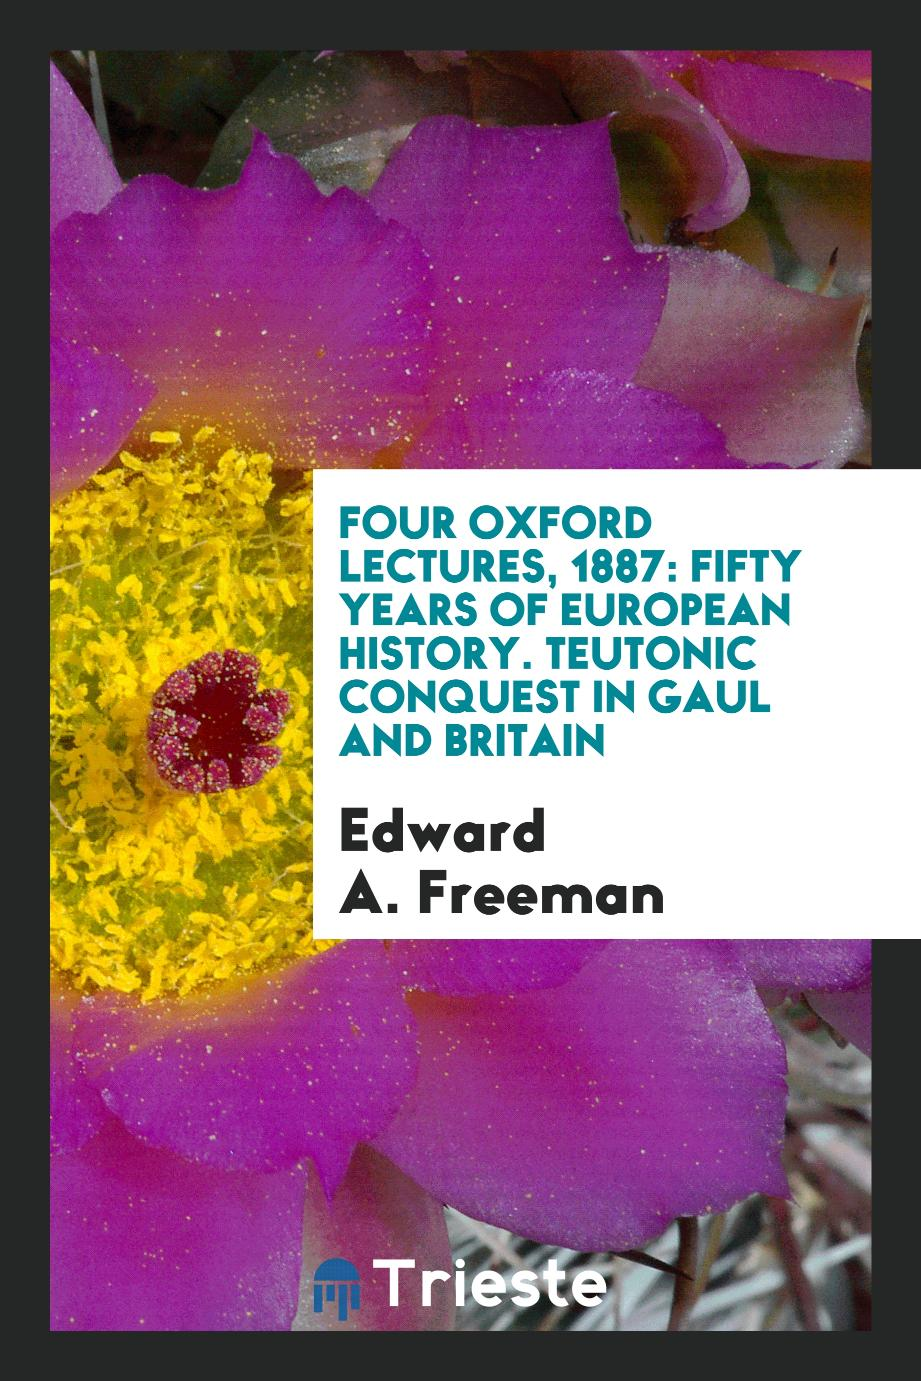 Four Oxford Lectures, 1887: Fifty Years of European History. Teutonic Conquest in Gaul and Britain